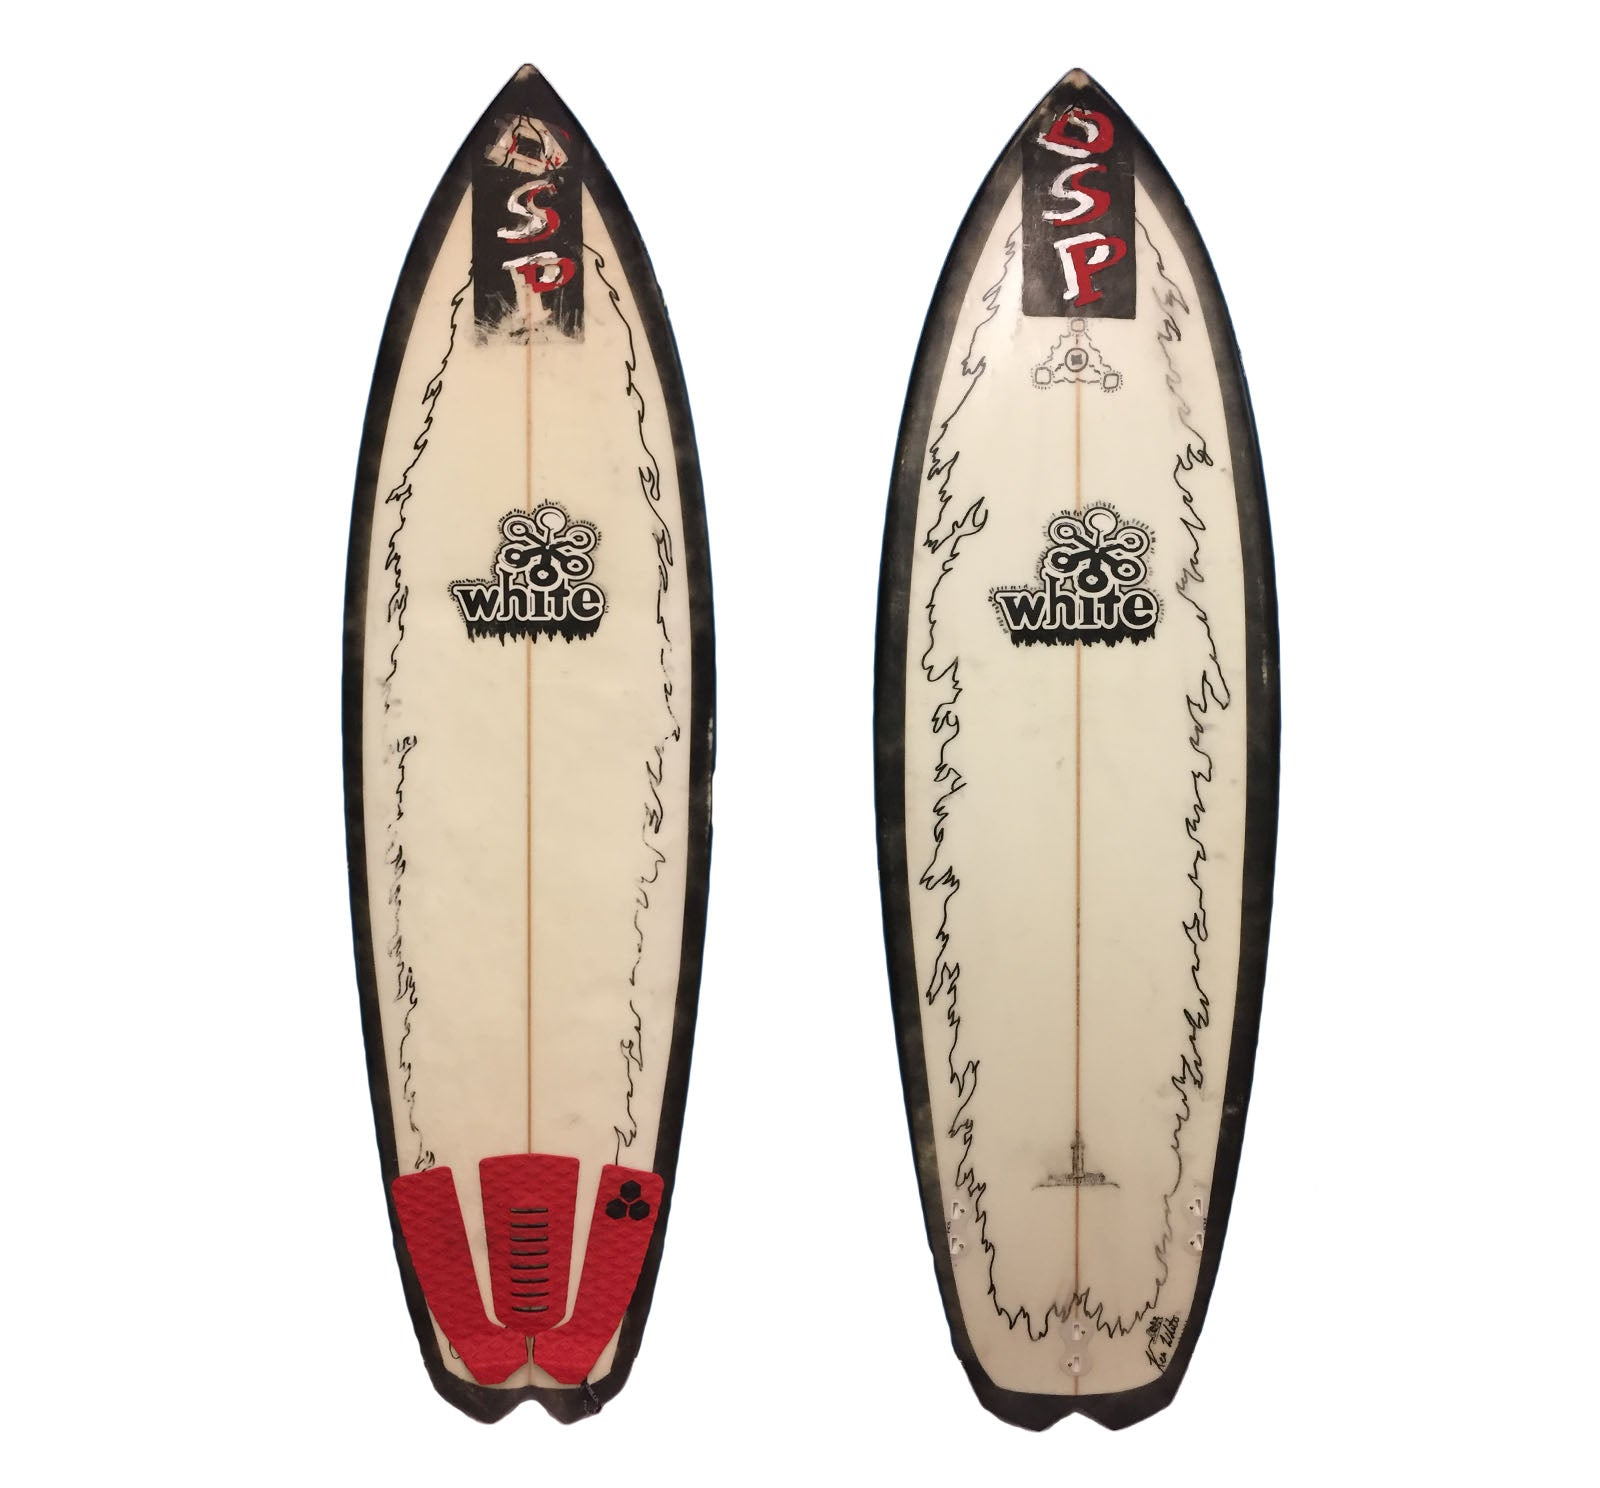 Ken White 5'8 Used Surfboard